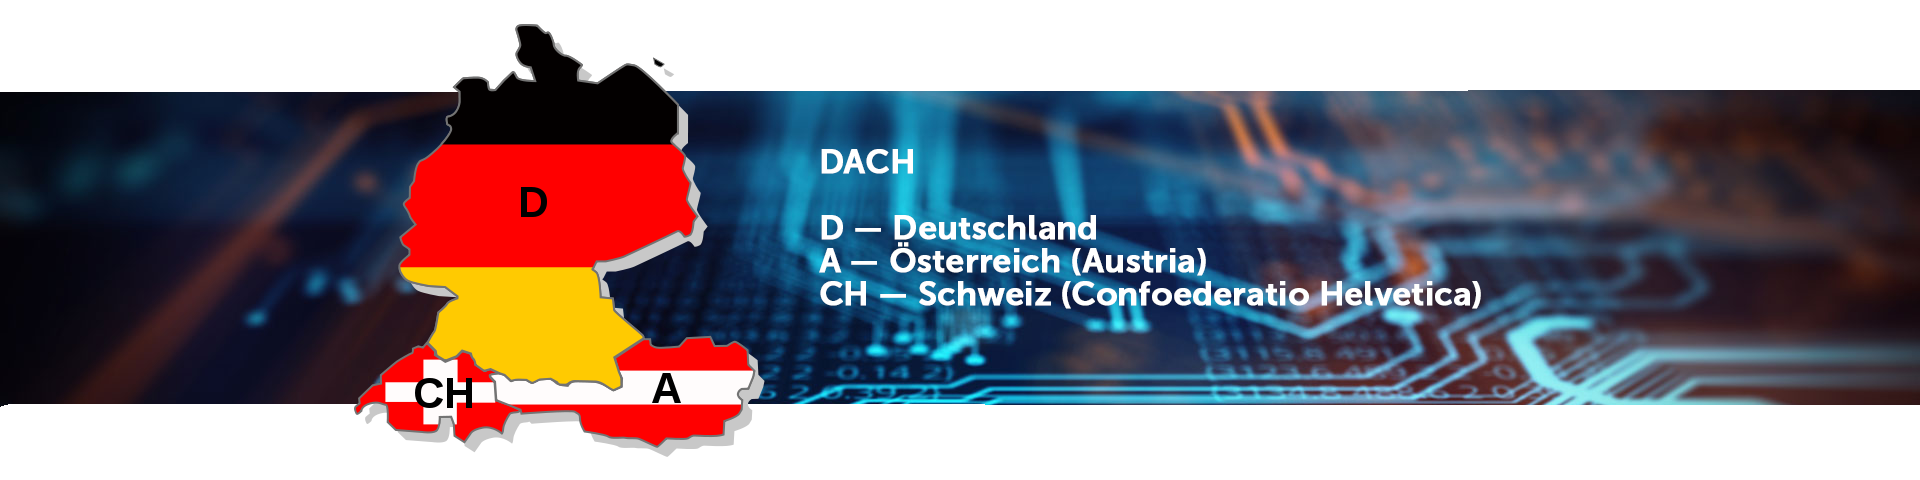 We open office in Germany as a new automotive & FPGA design company in the DACH Region